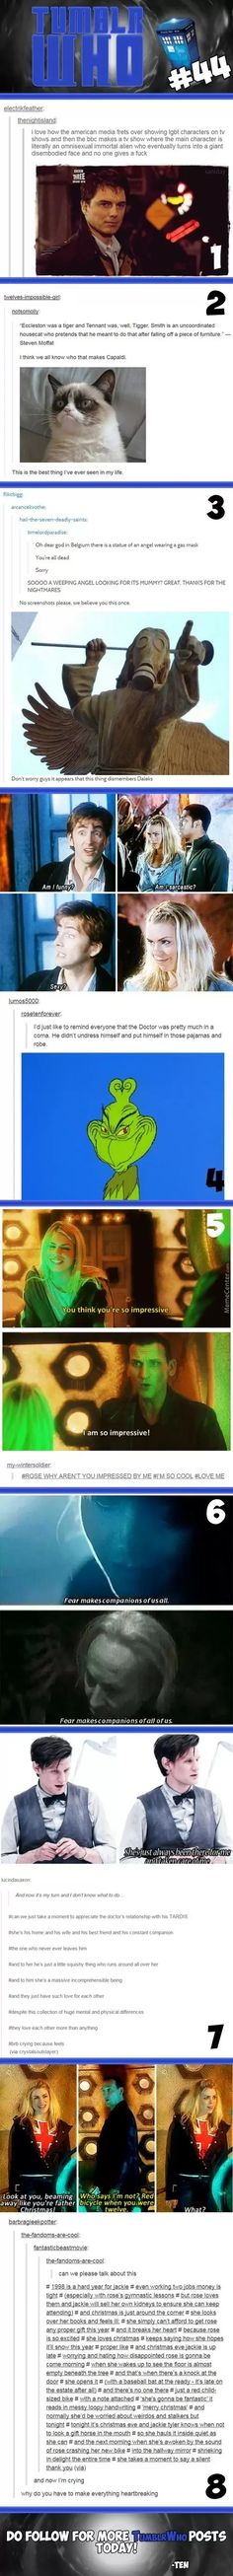 Lol Christopher Eccleston was a tiger, David Tennant was tigger and Matt Smith was a household cat who falls off furniture and pretends he meant to do it XD Also, that last one made me cry... that was so beautiful and sad and heartbreaking!!